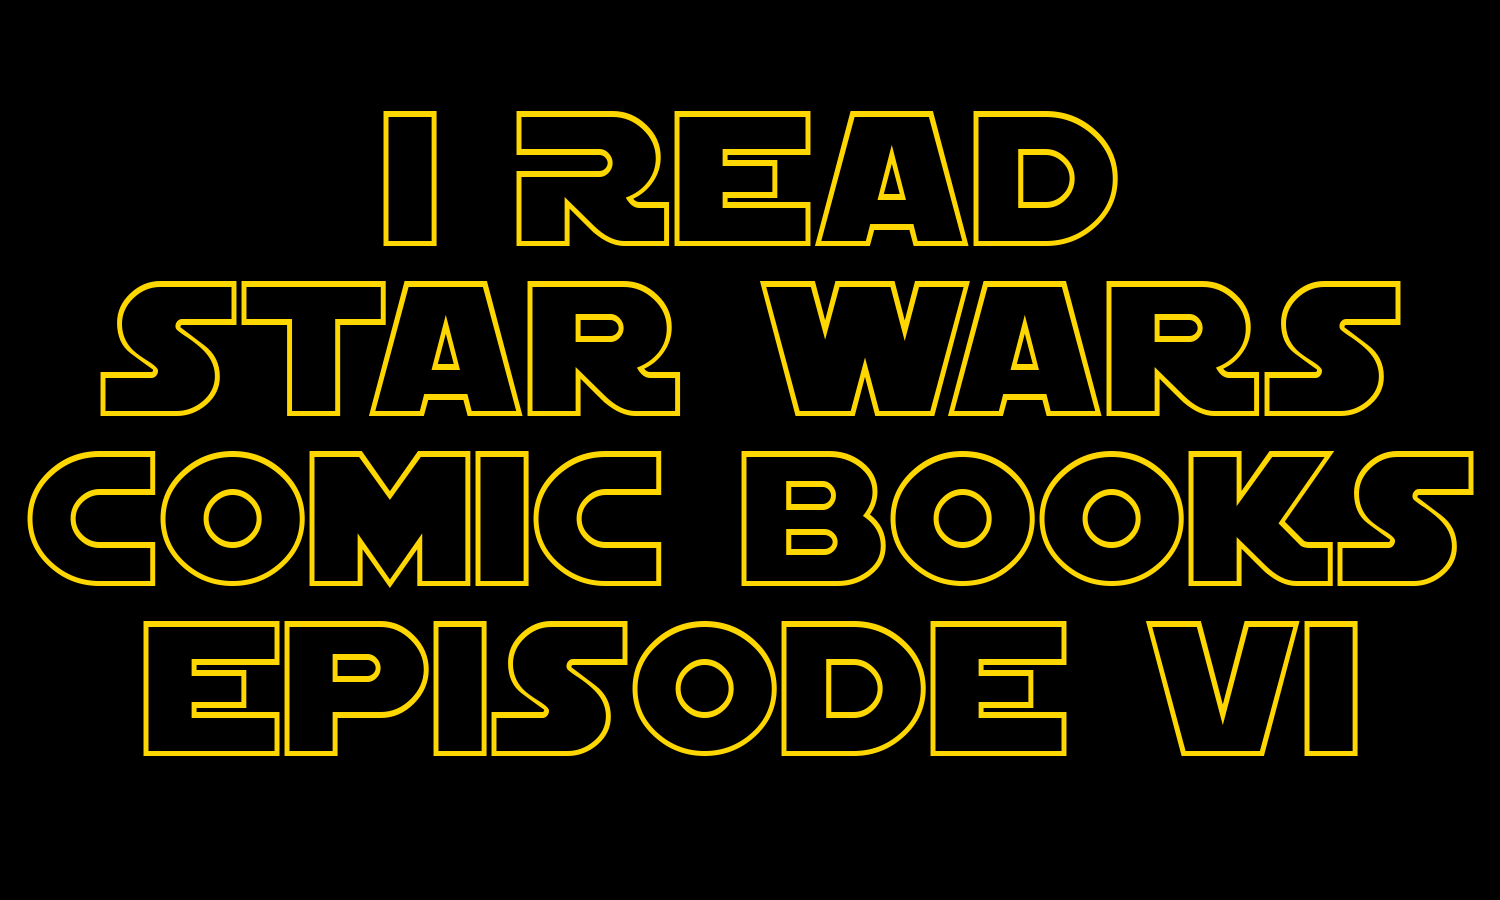 I Read Star Wars Comic Books Episode VI | Kanan and Rebels